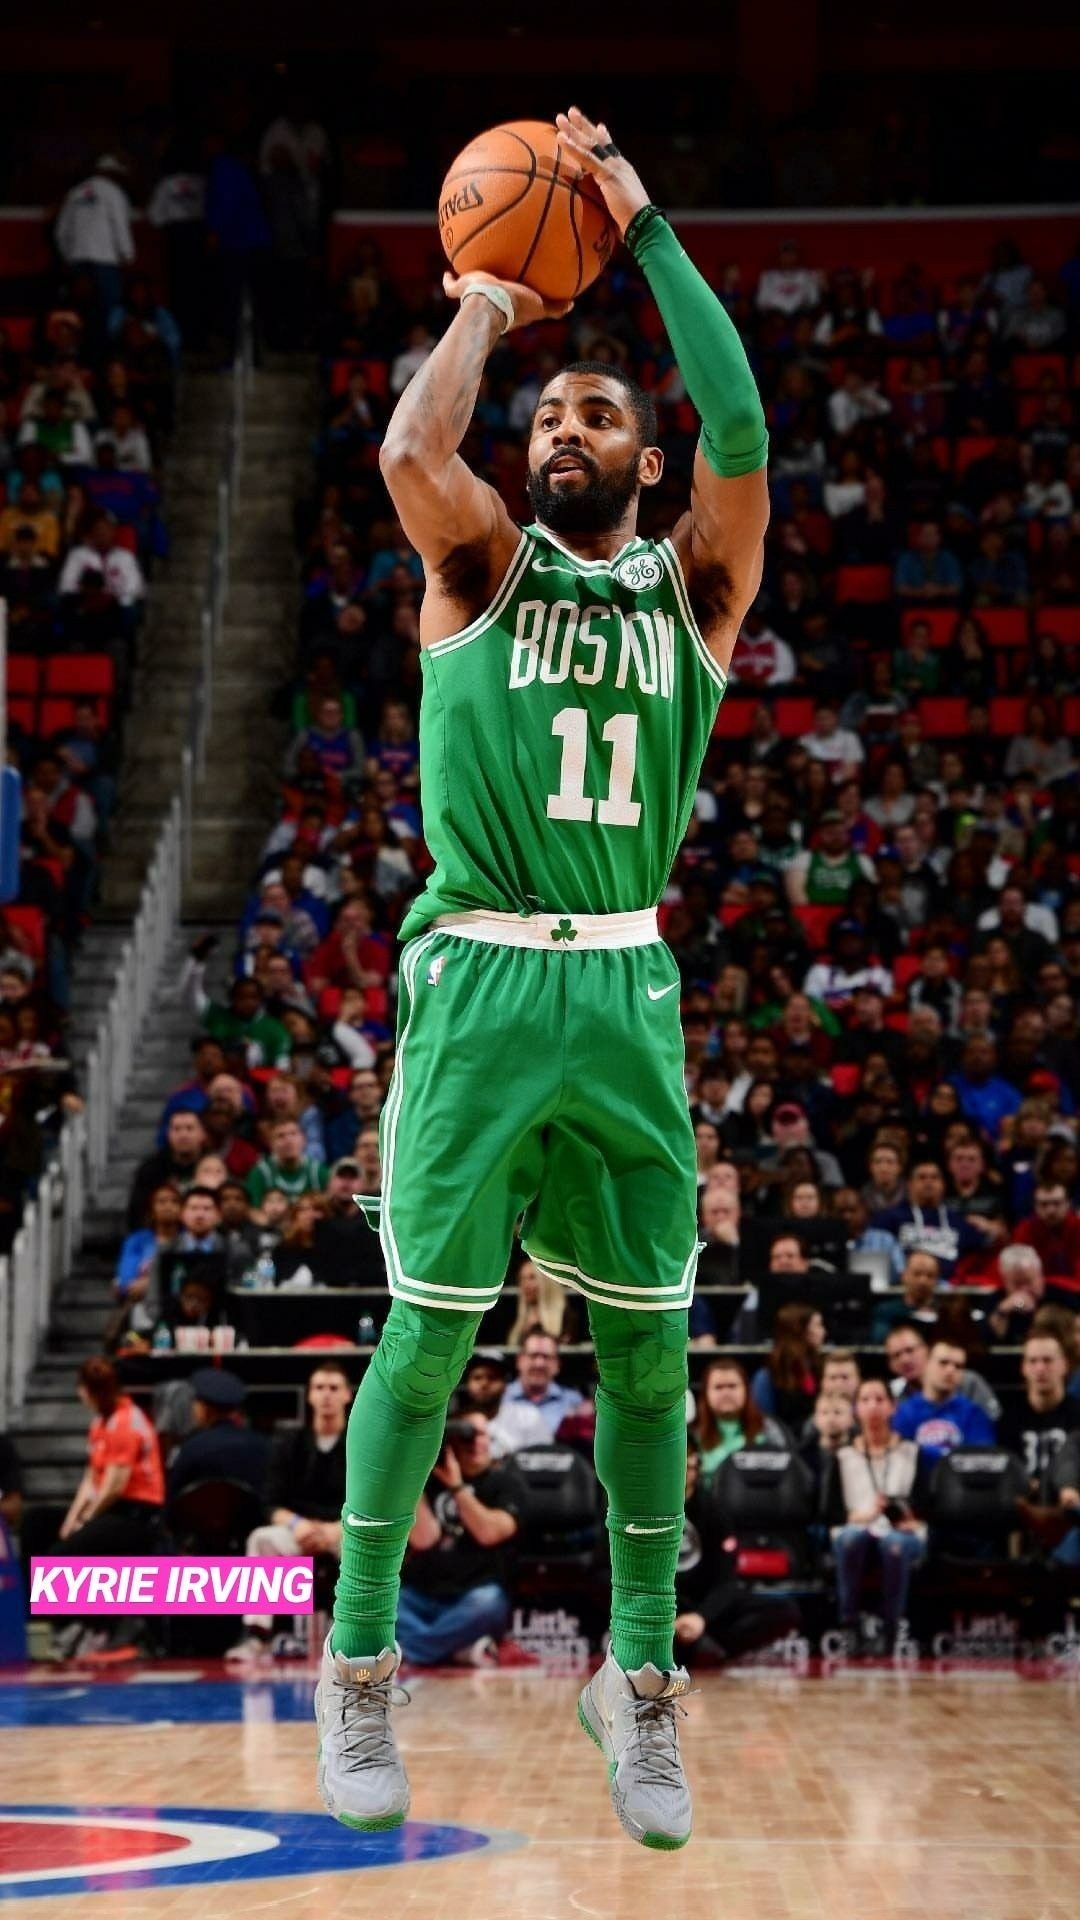 Kyrie Irving 2018 Wallpapers 73 Background Pictures